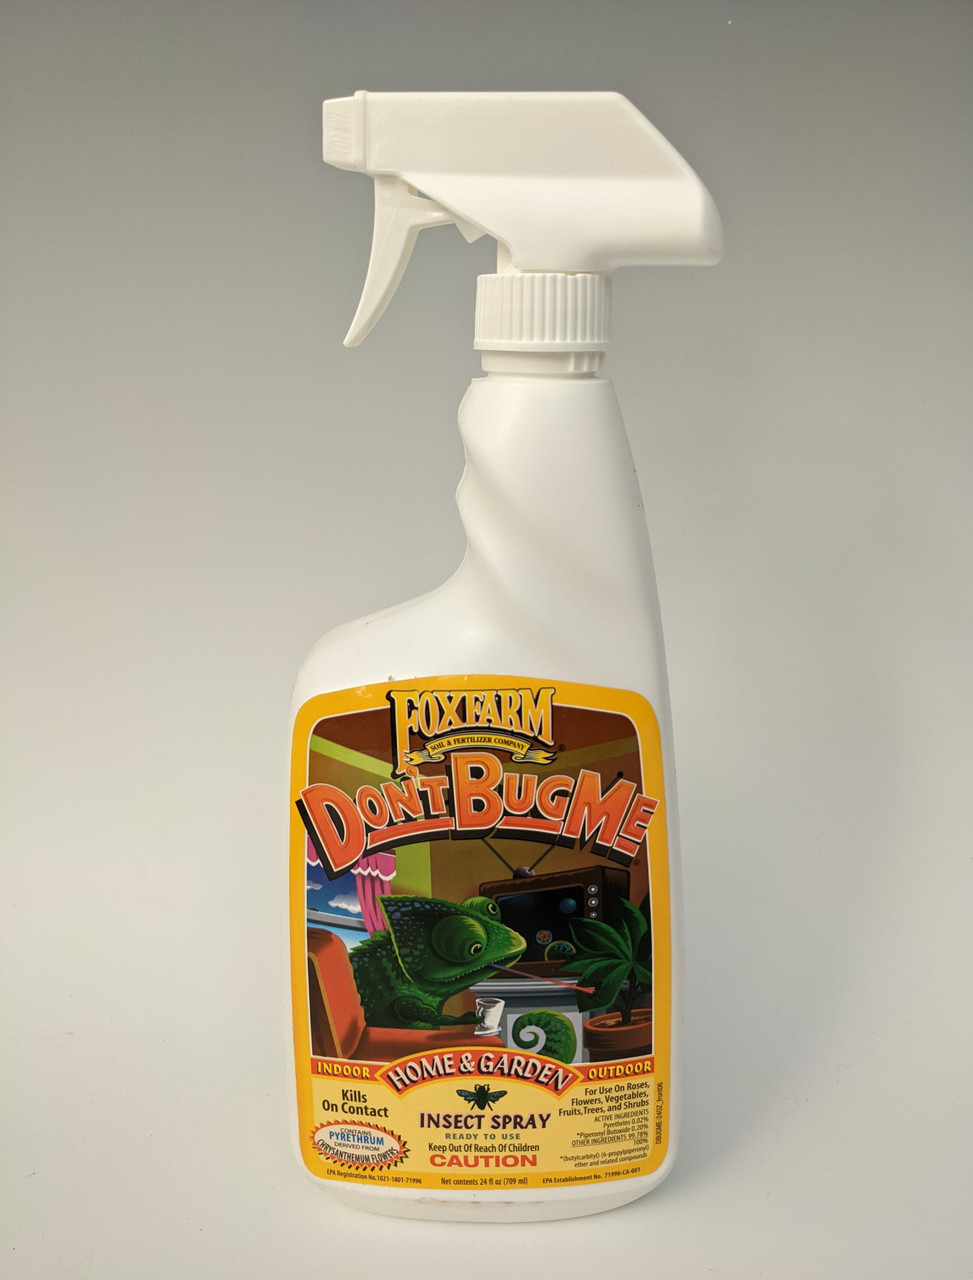 Don't Bug Me - Pyrethrum Insecticide Spray